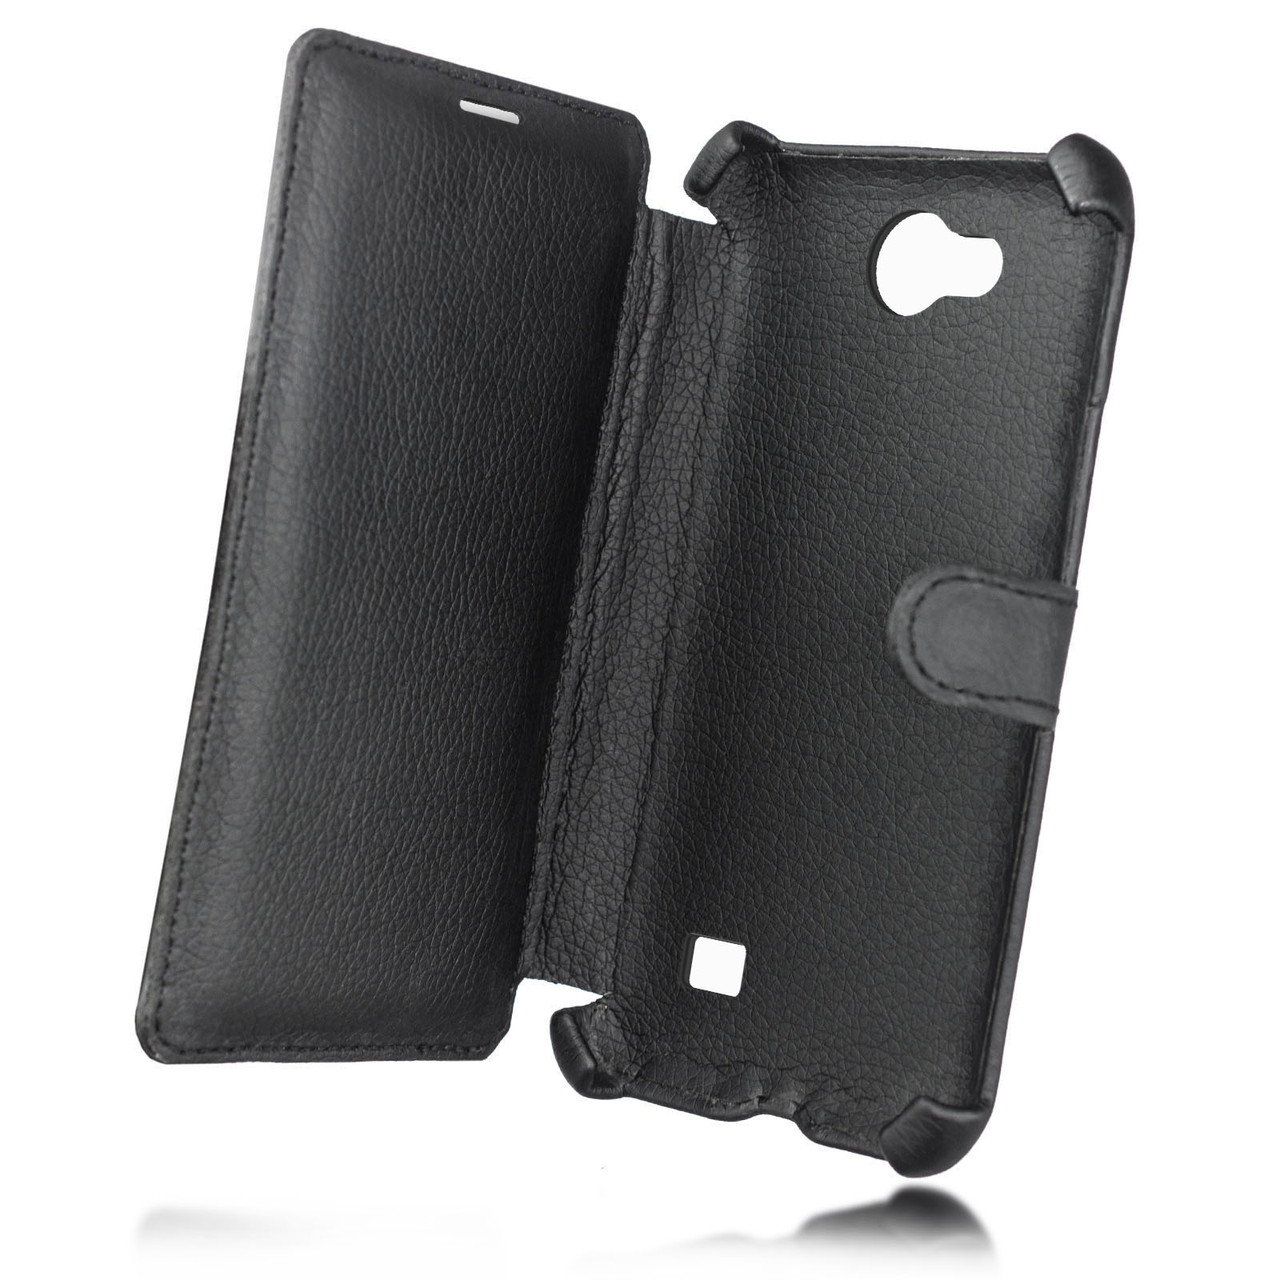 MICROMAX A51 DOWNLOAD DRIVERS